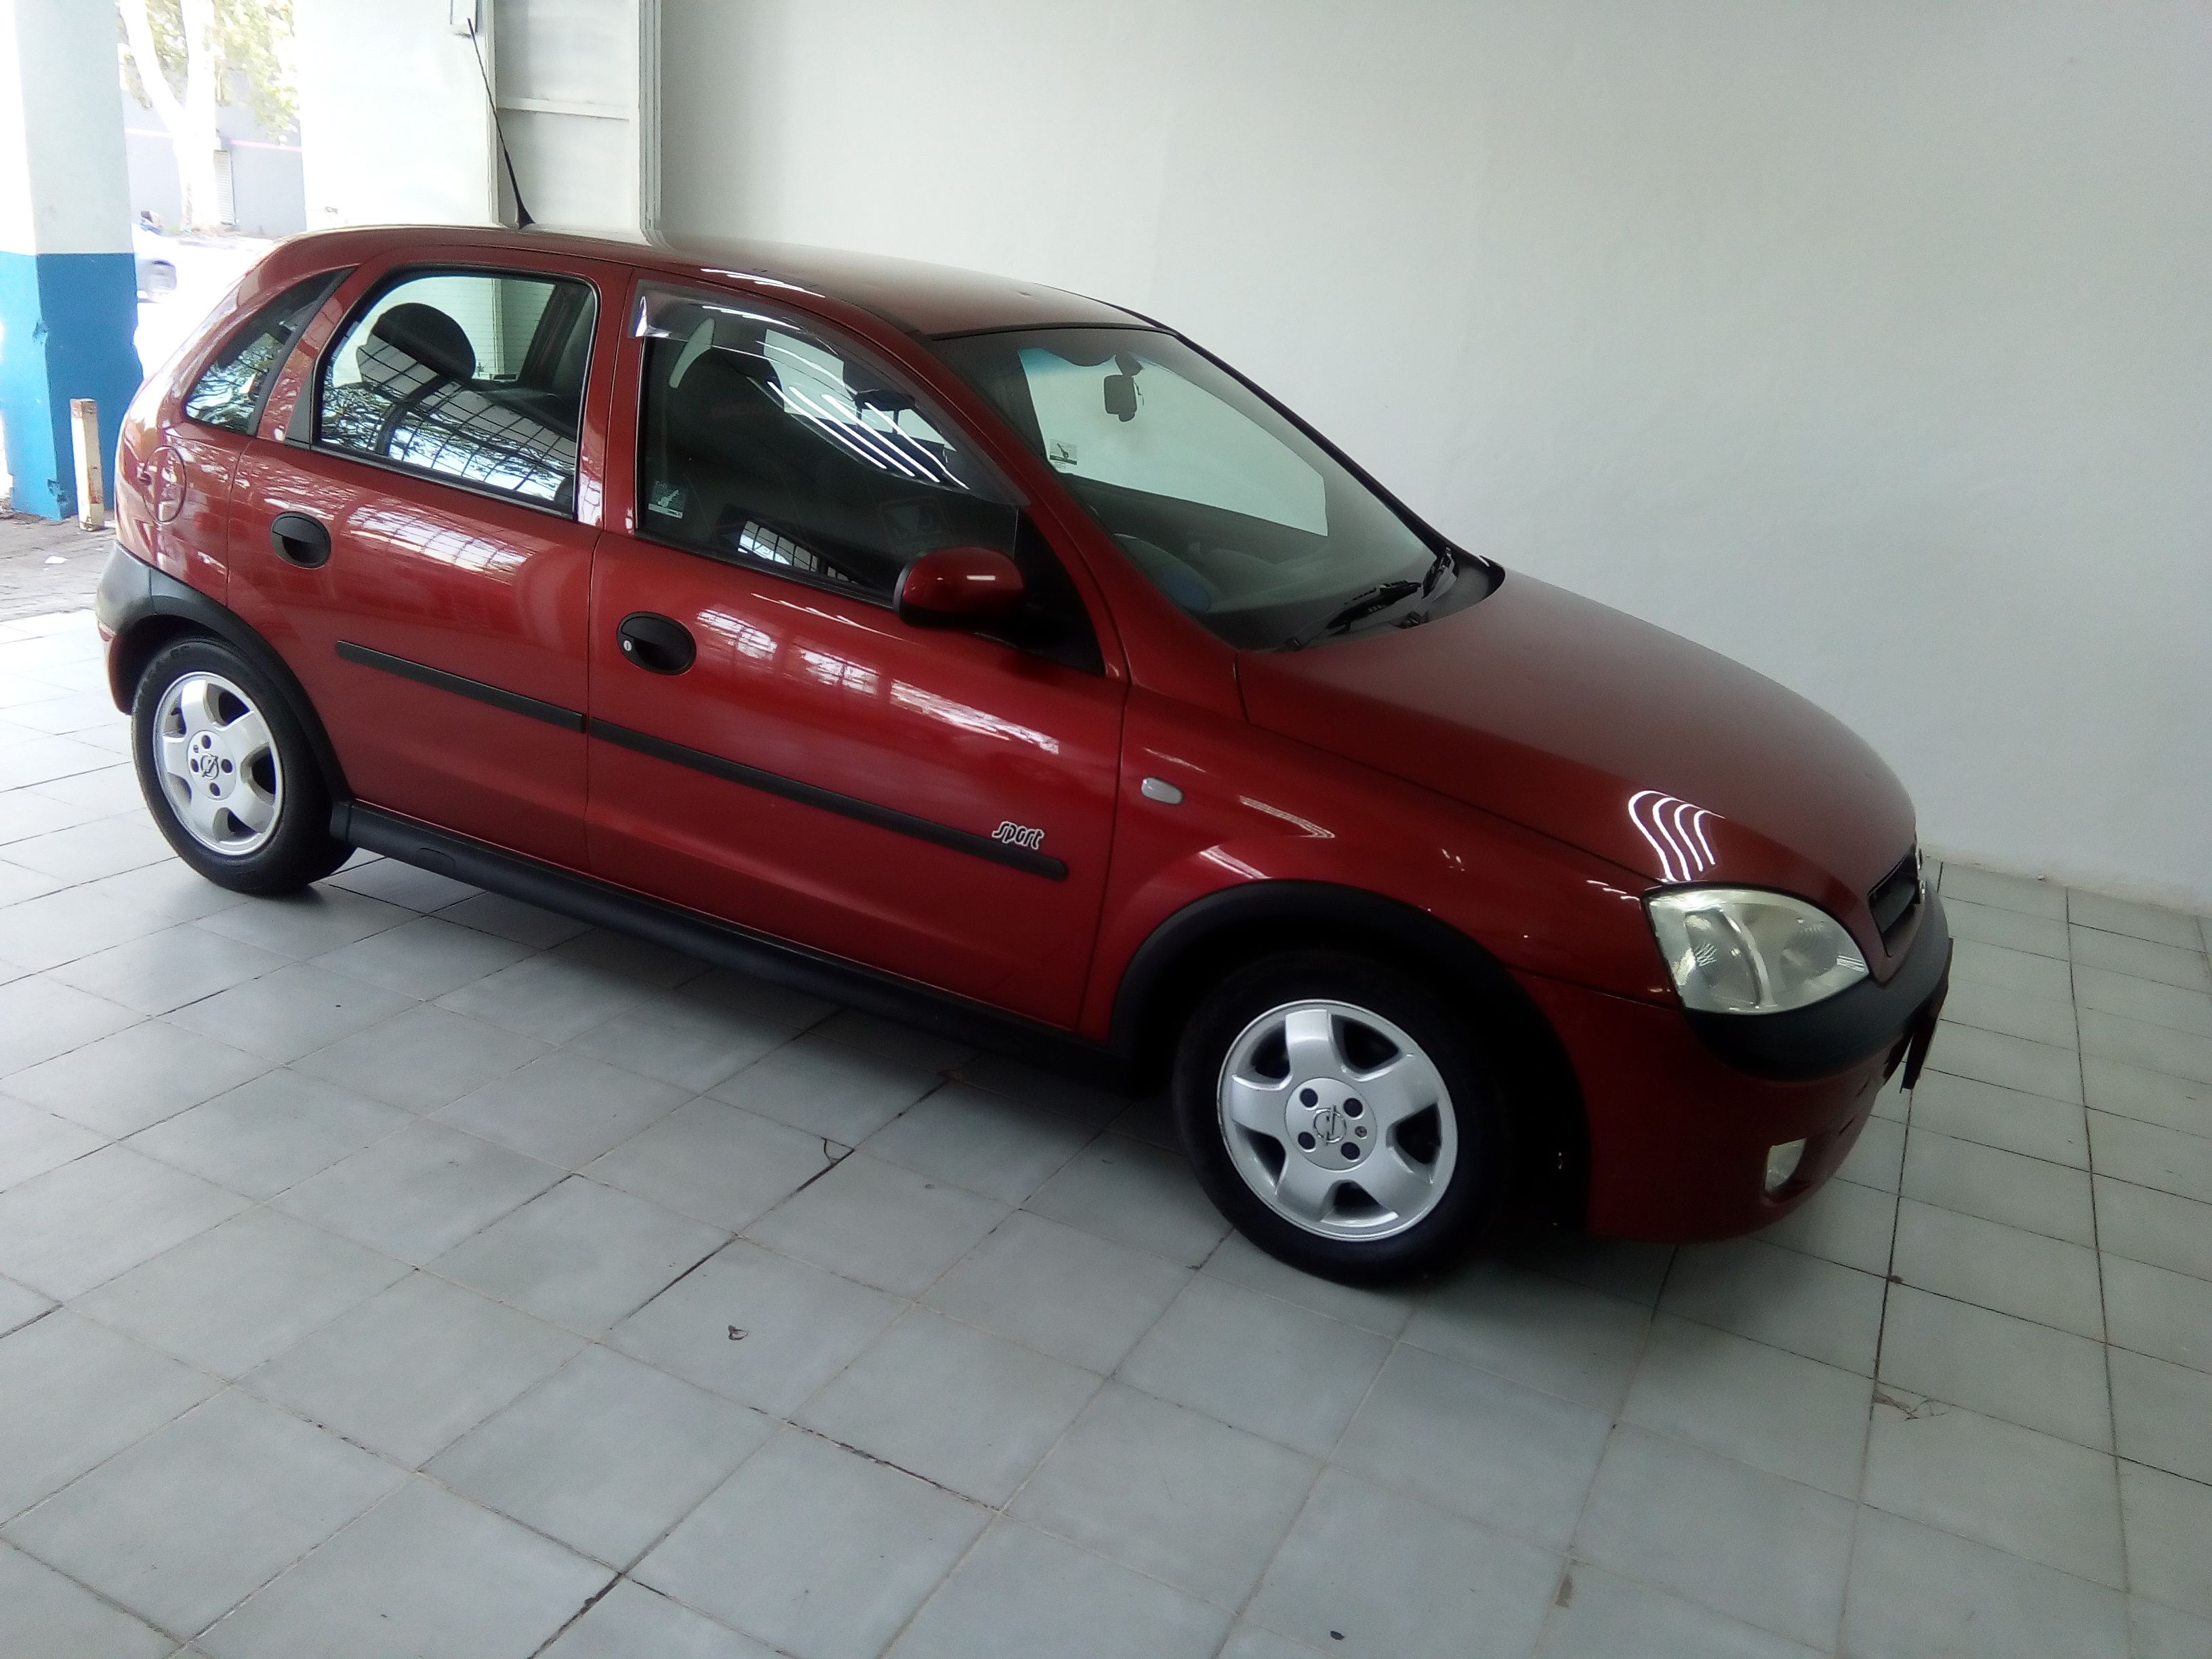 CORSA FOR SALE Opel corsa, Olx south africa, Maybach